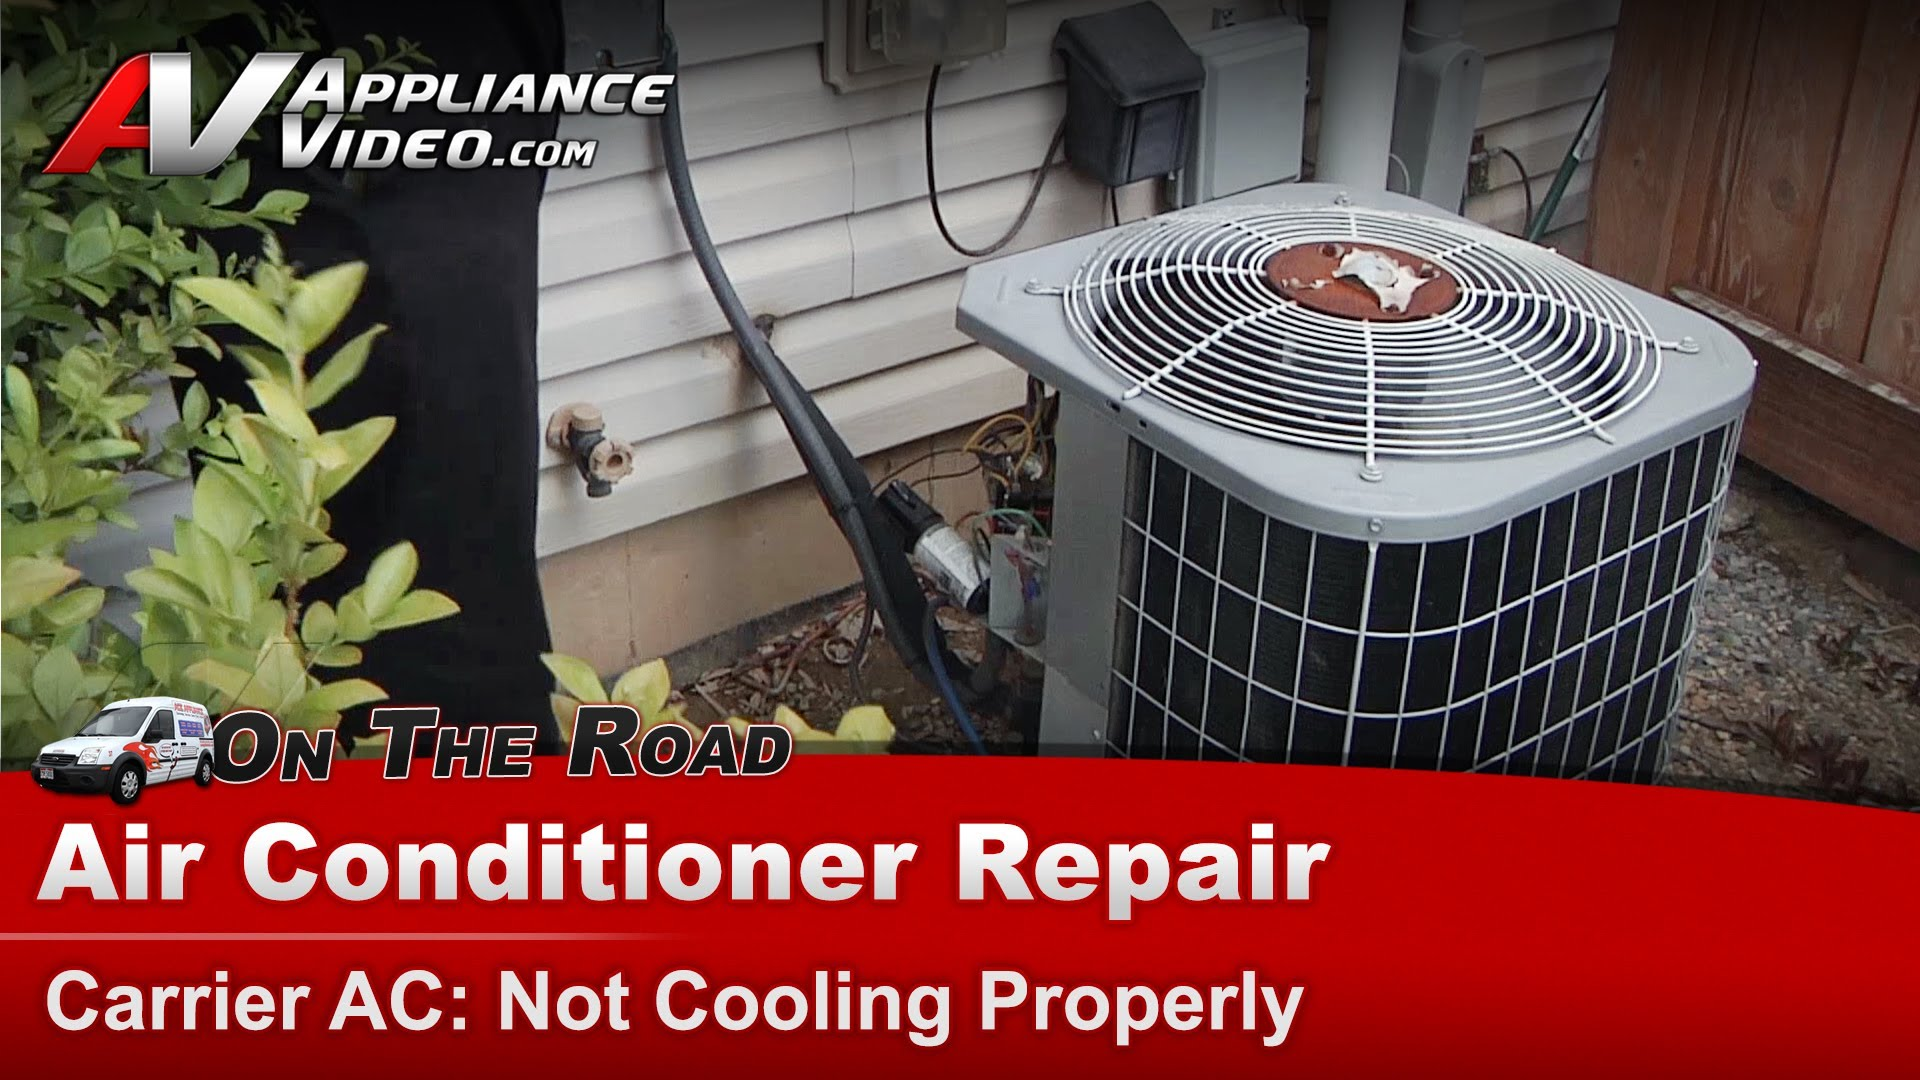 Carrier 38ckc036350 Air Conditioner Repair Not Cooling Properly Capacitor Liance Video